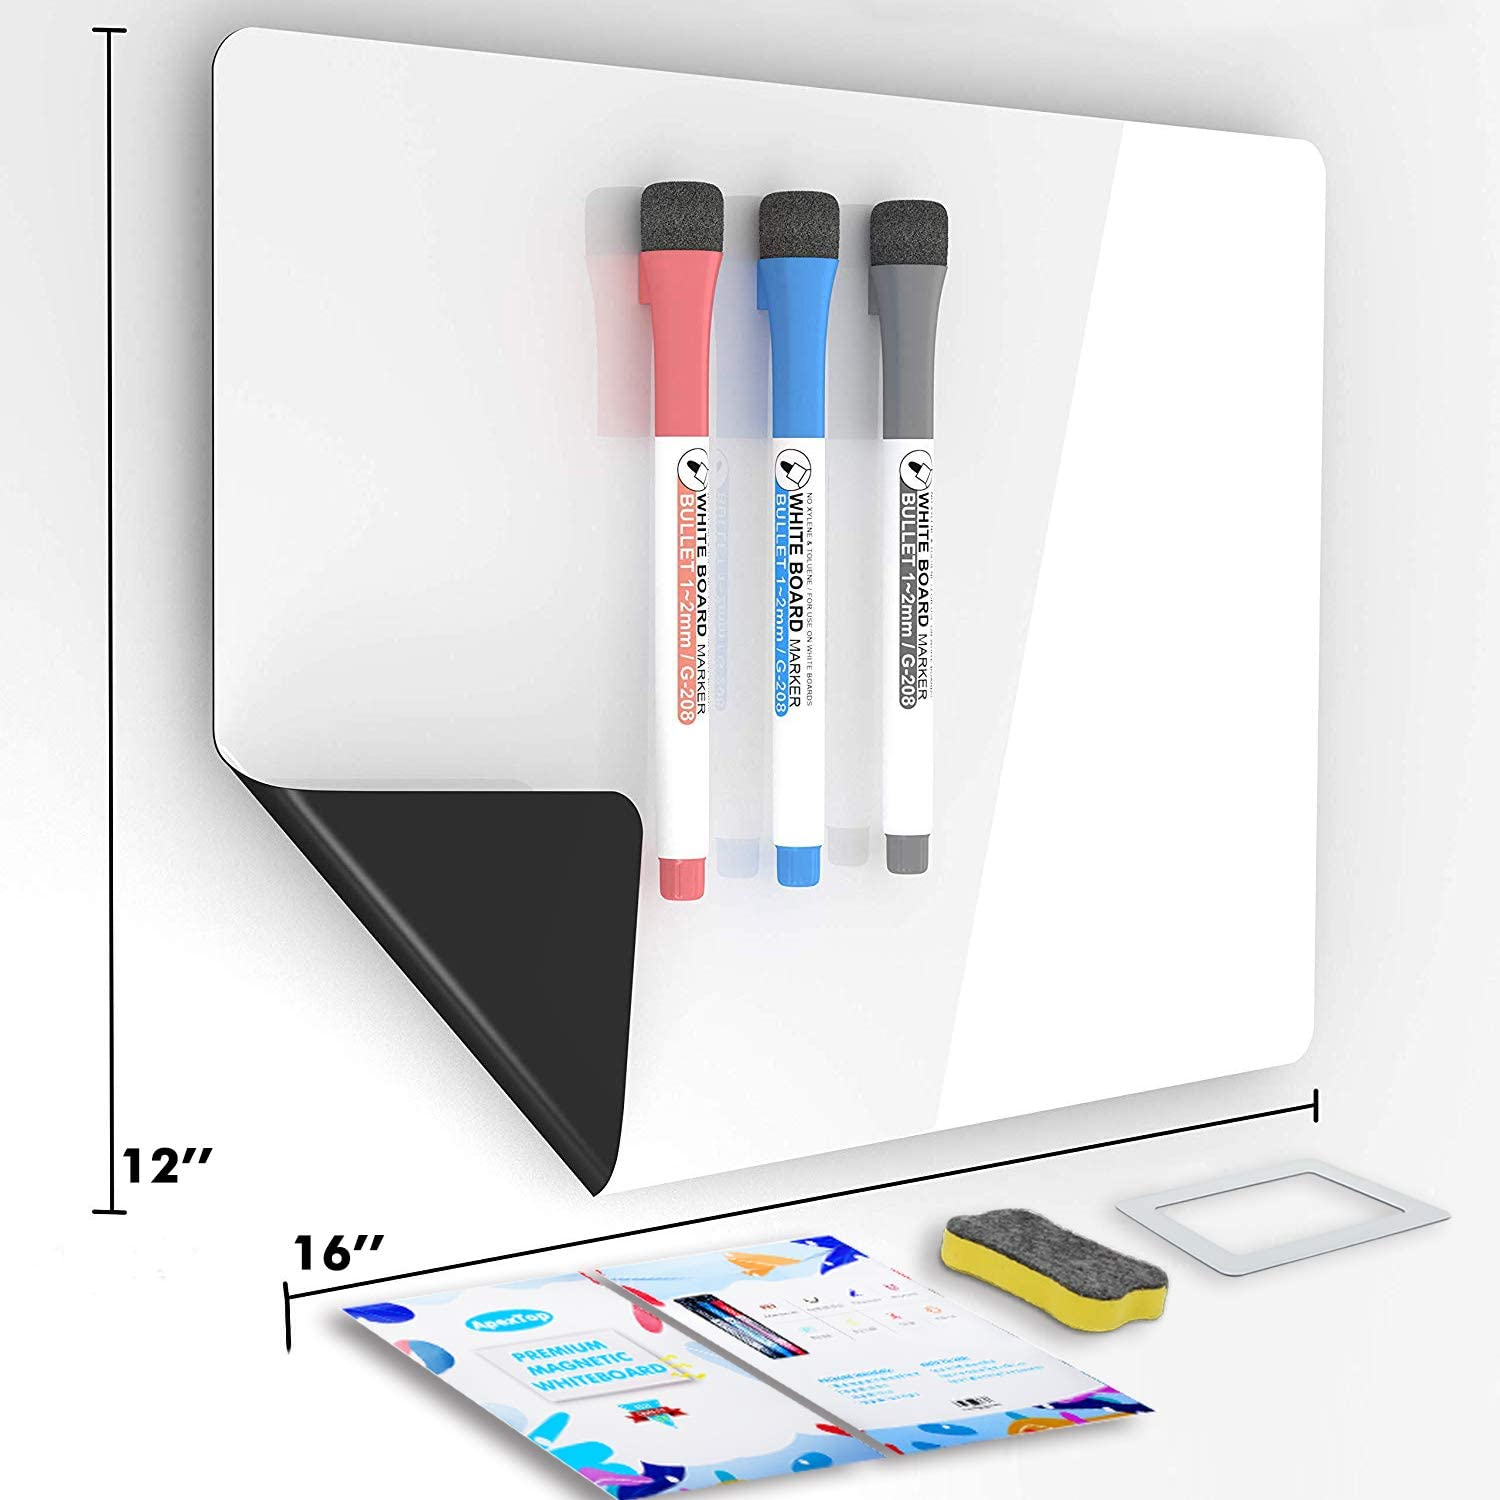 ApexTop Magnetic Dry Erase Whiteboard Sheet for Fridge, 16 x 12 inches White Board Planner and Organizer, 3 Fine Tip Markers and Magnetic Eraser and Photo Frame